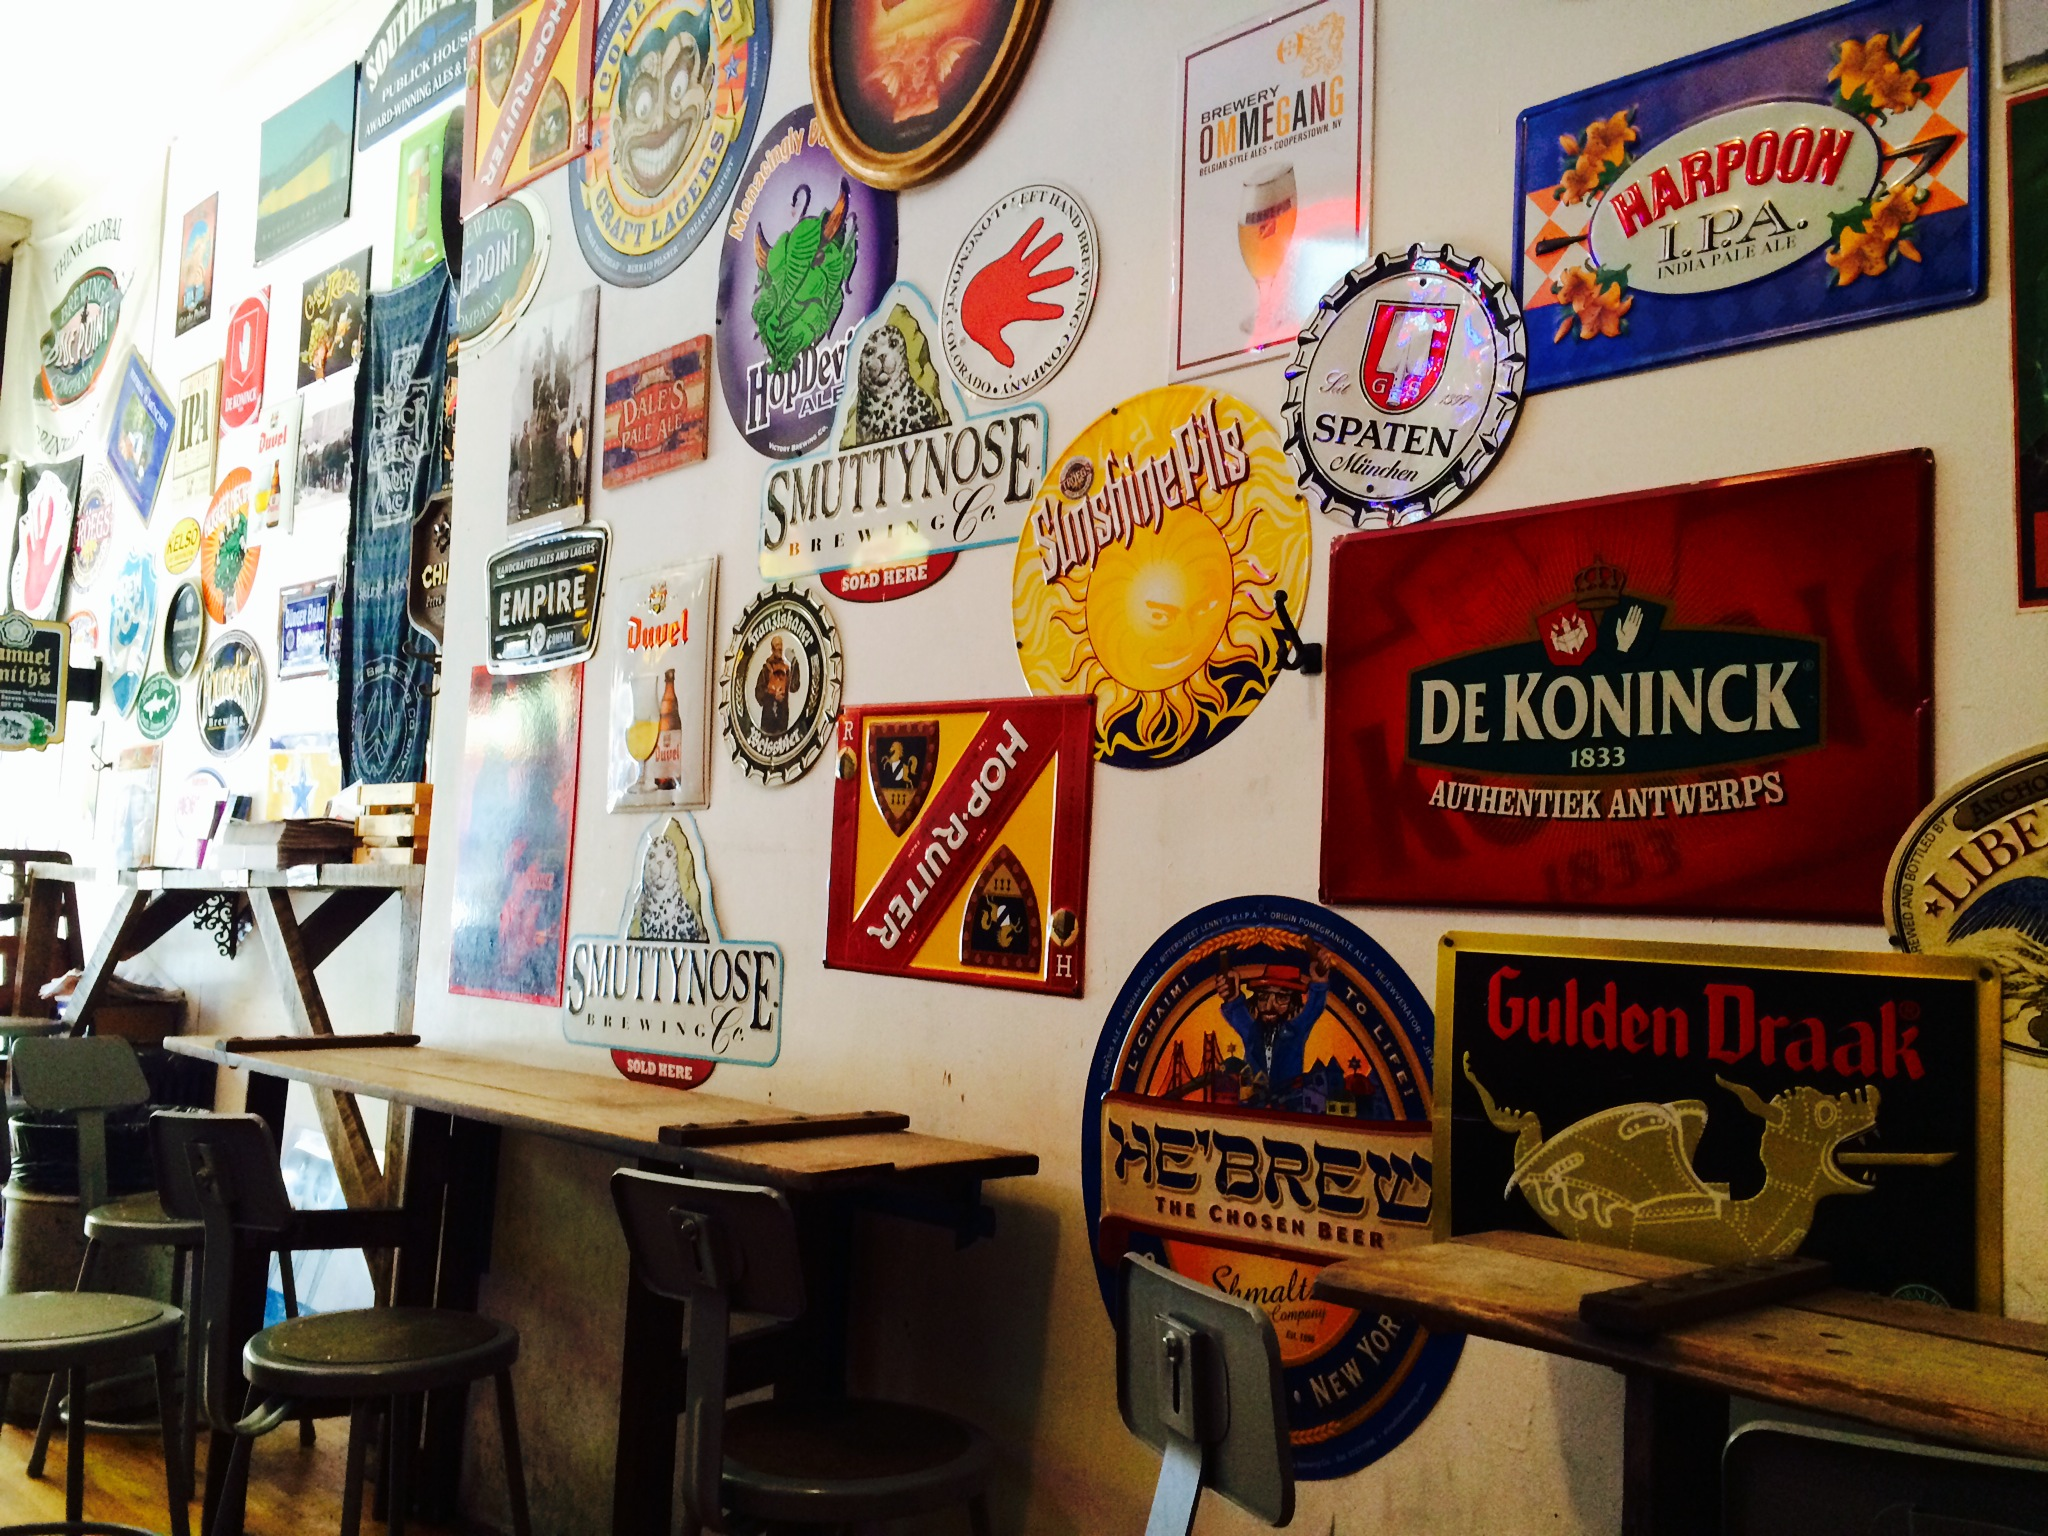 Inside Bierkraft you'll find beer signs and hear throwback 90's tunage. There is also an outdoor beer garden.